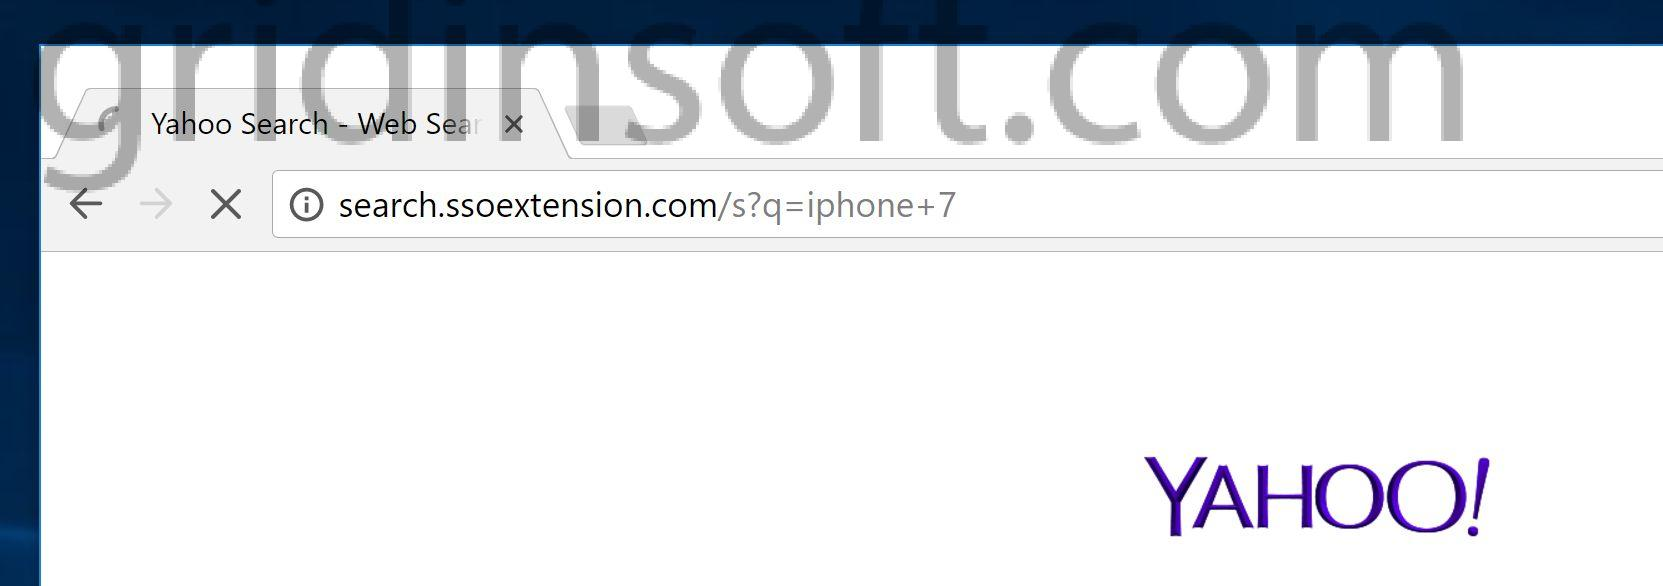 remove Search.ssoextension.com Search.ssoextension.com